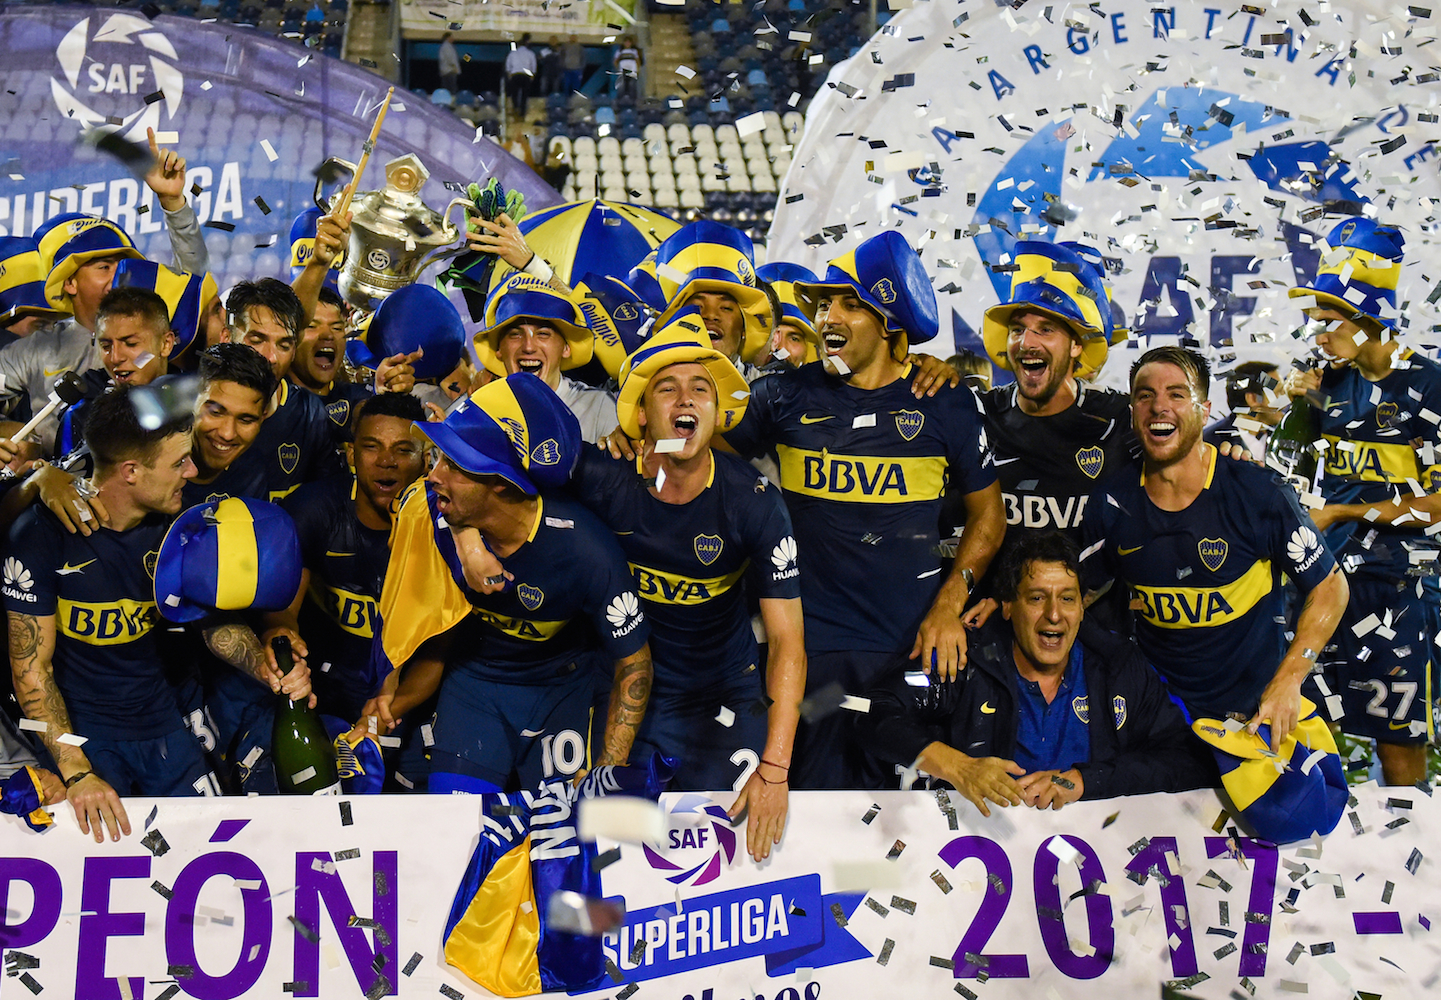 TRAILER: 'Boca Juniors Confidencial' Takes You Into the Locker Room of Argentina's Soccer Powerhouse